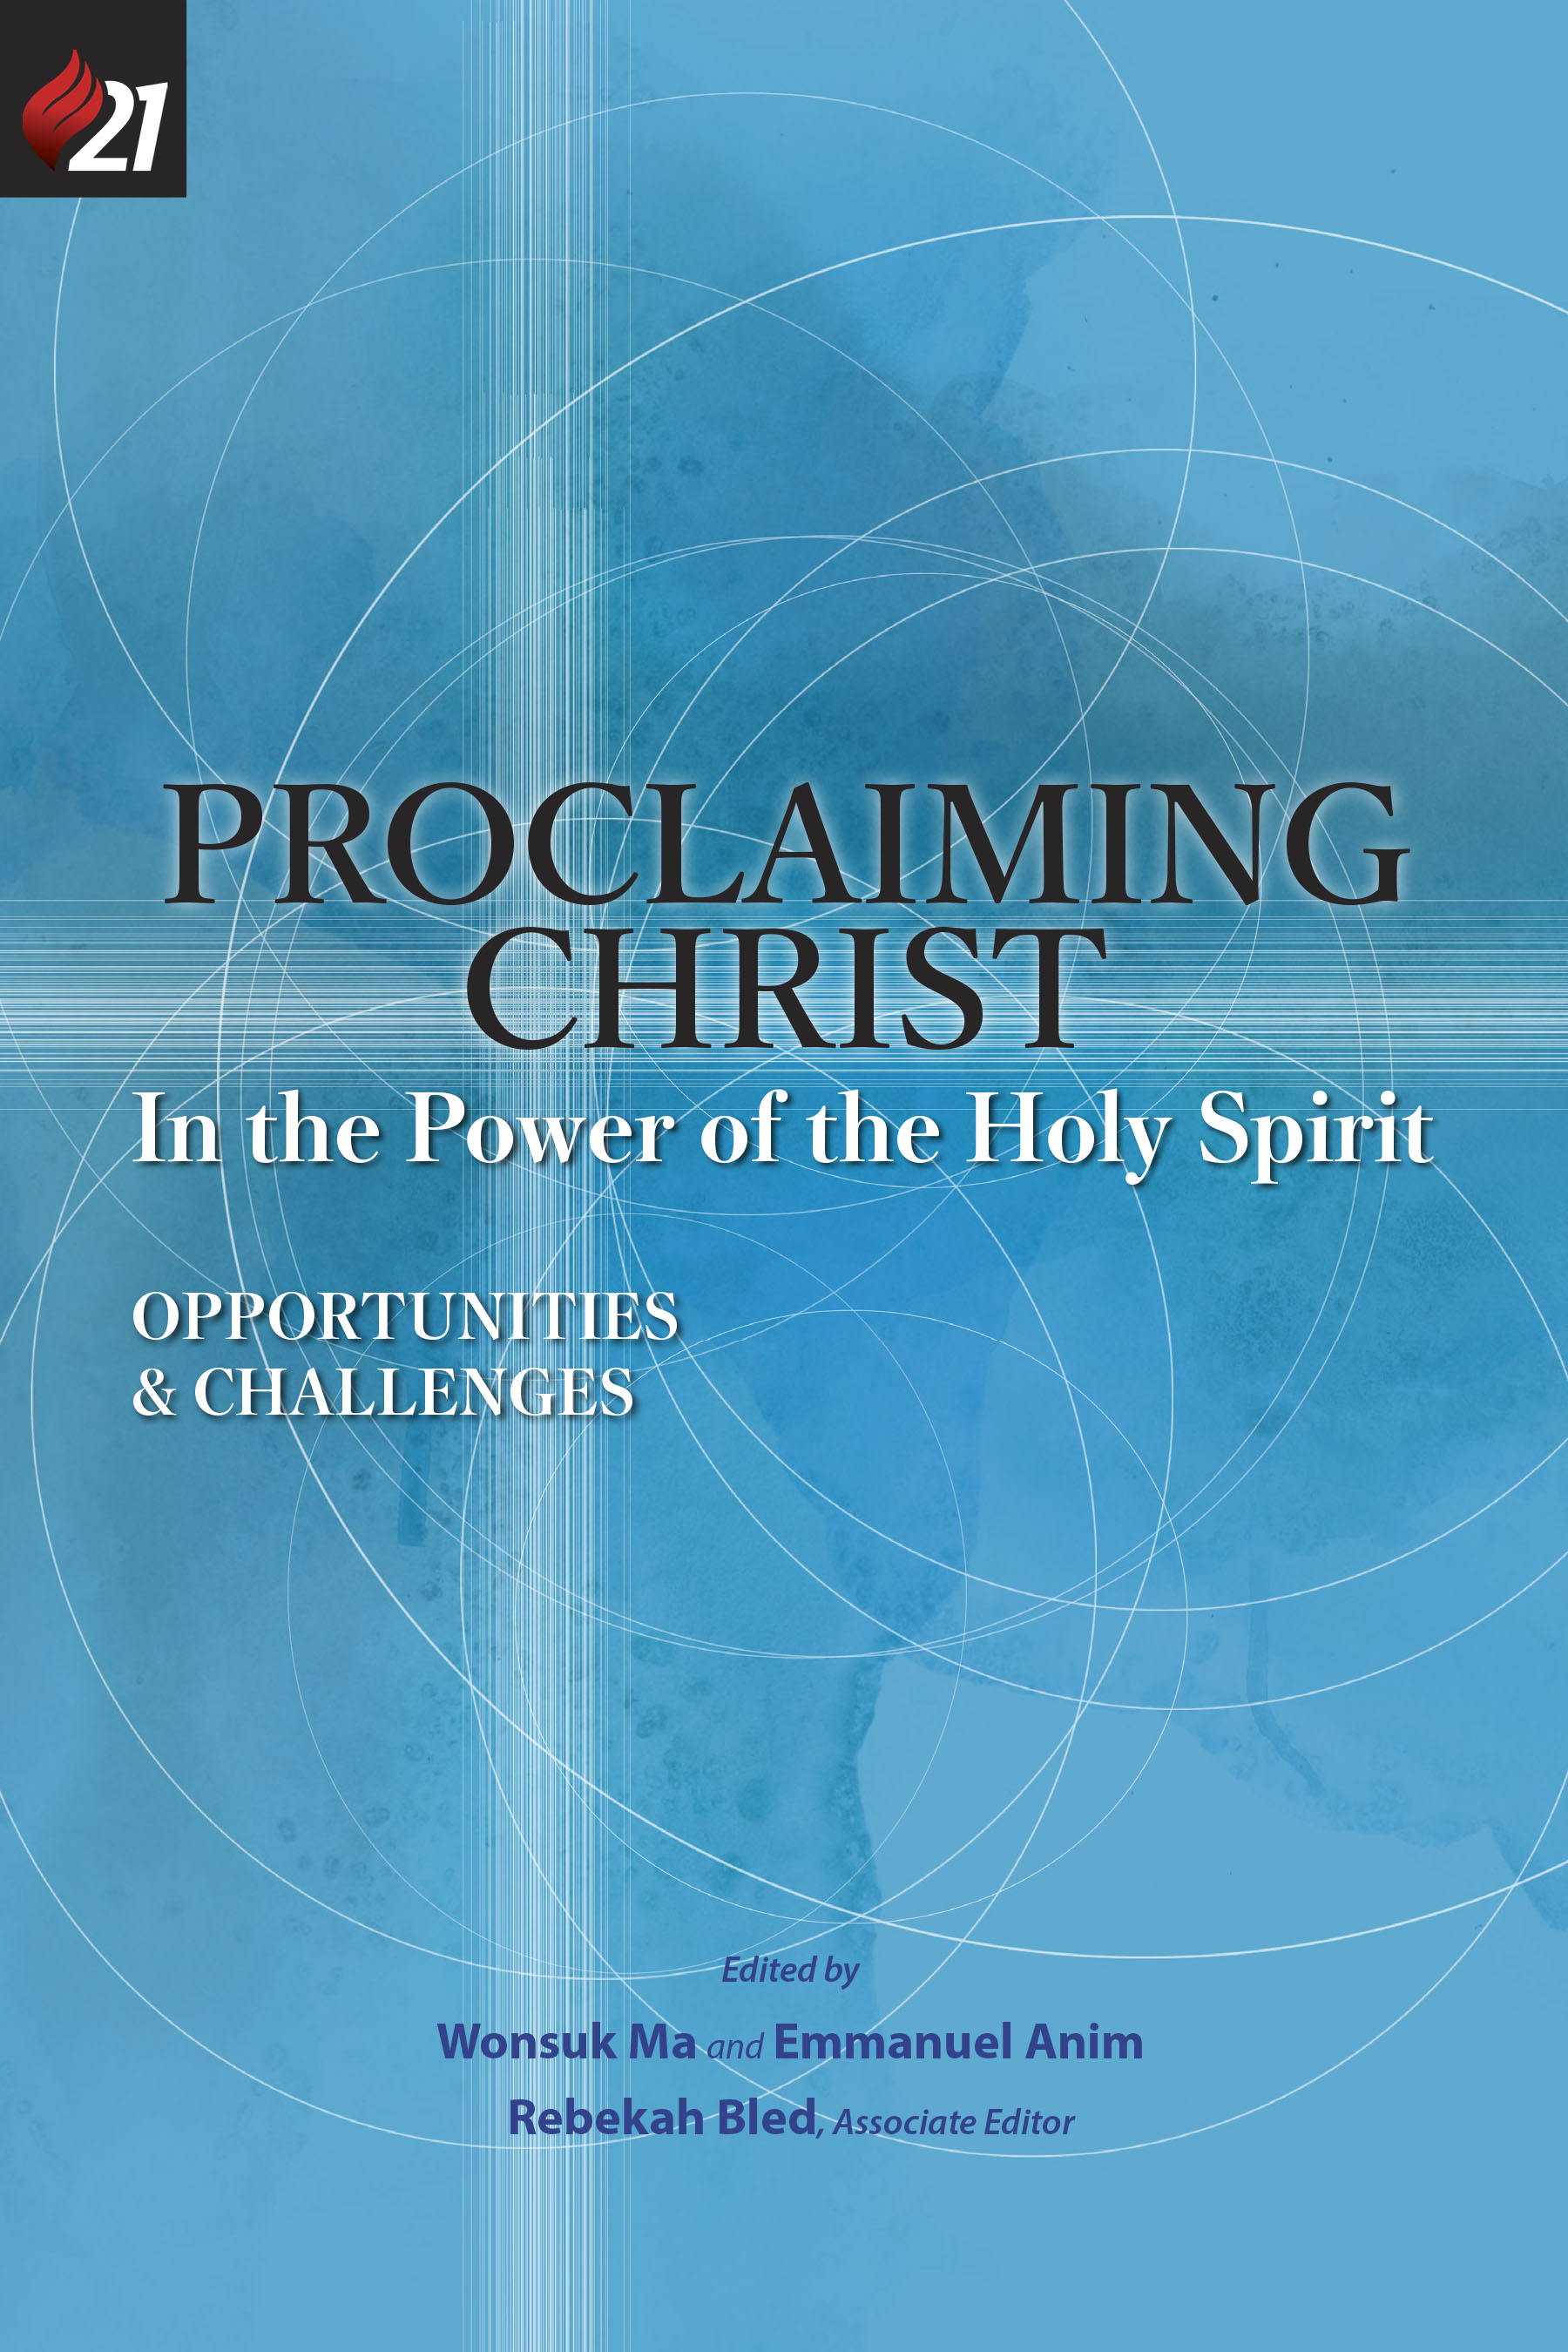 Proclaiming Christ in the Power of the Holy Spirit book jacket